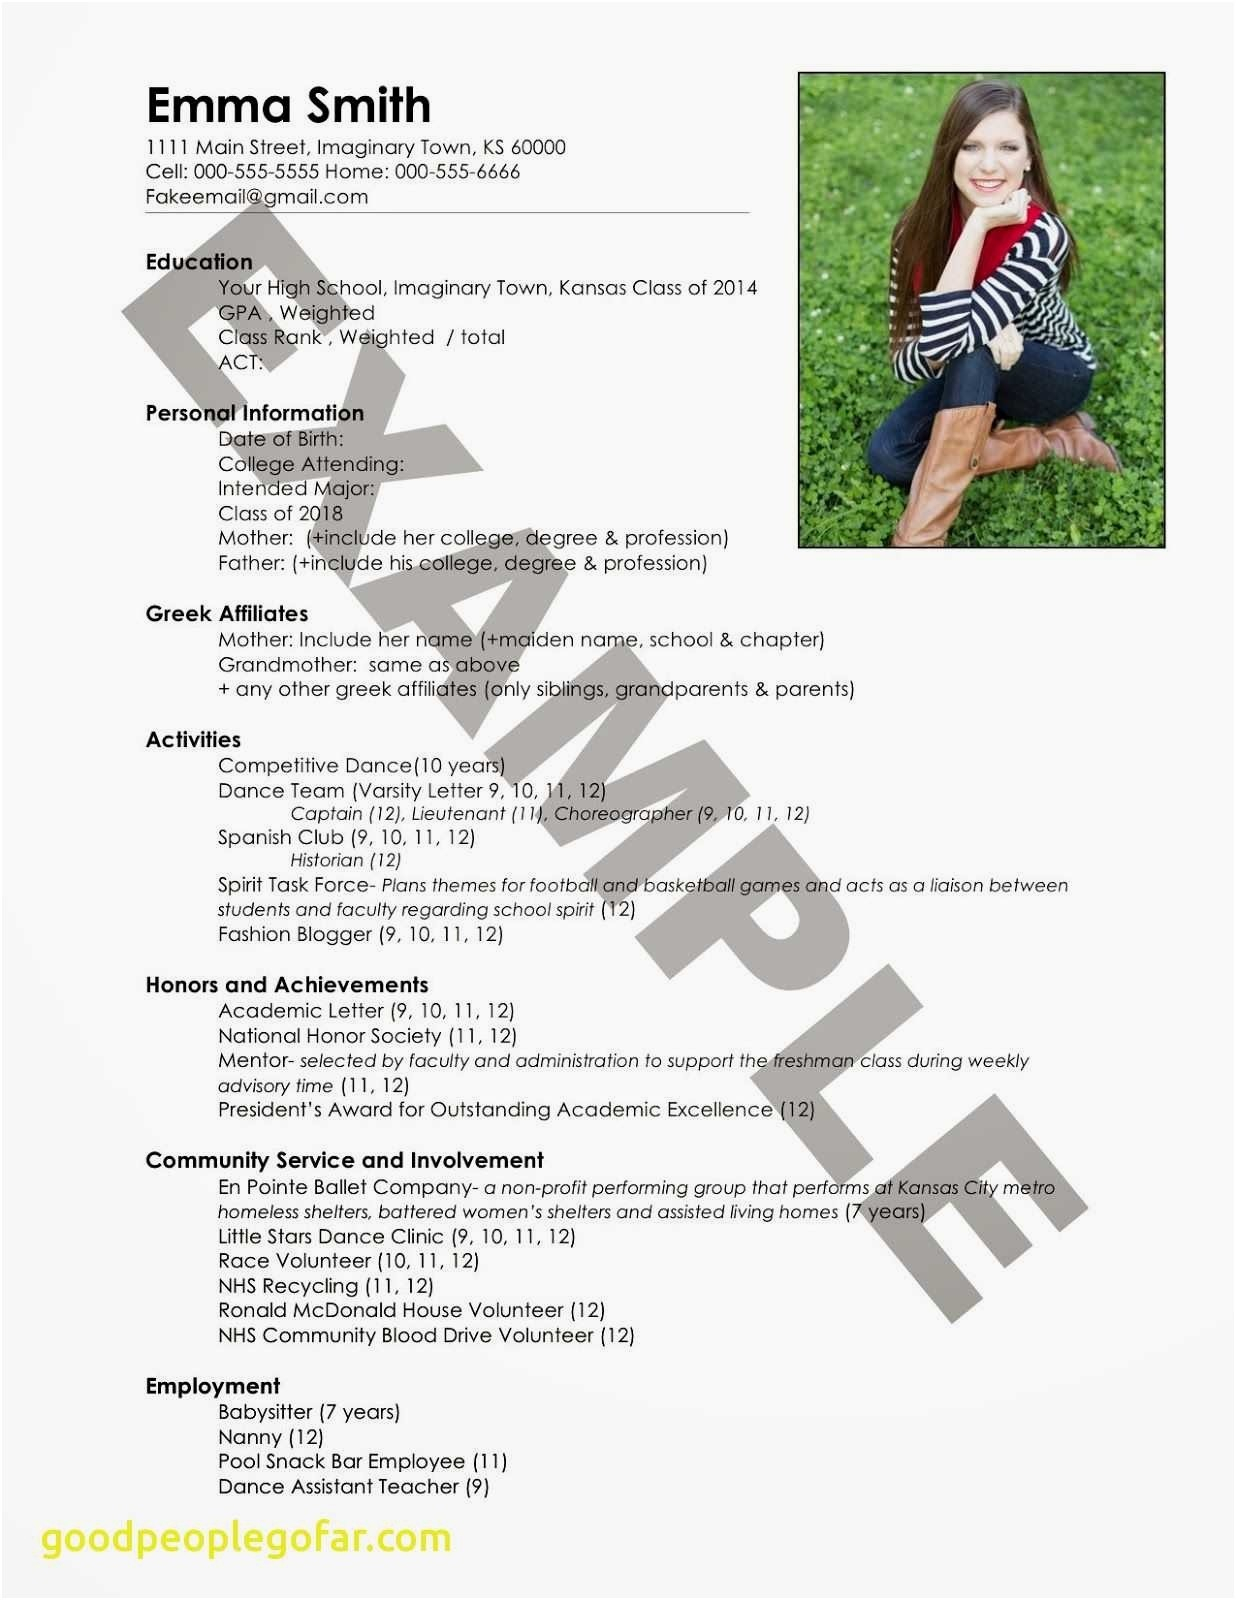 Entry Level Human Resources Resume - Entry Level Human Resources Resume Elegant Human Resources Entry